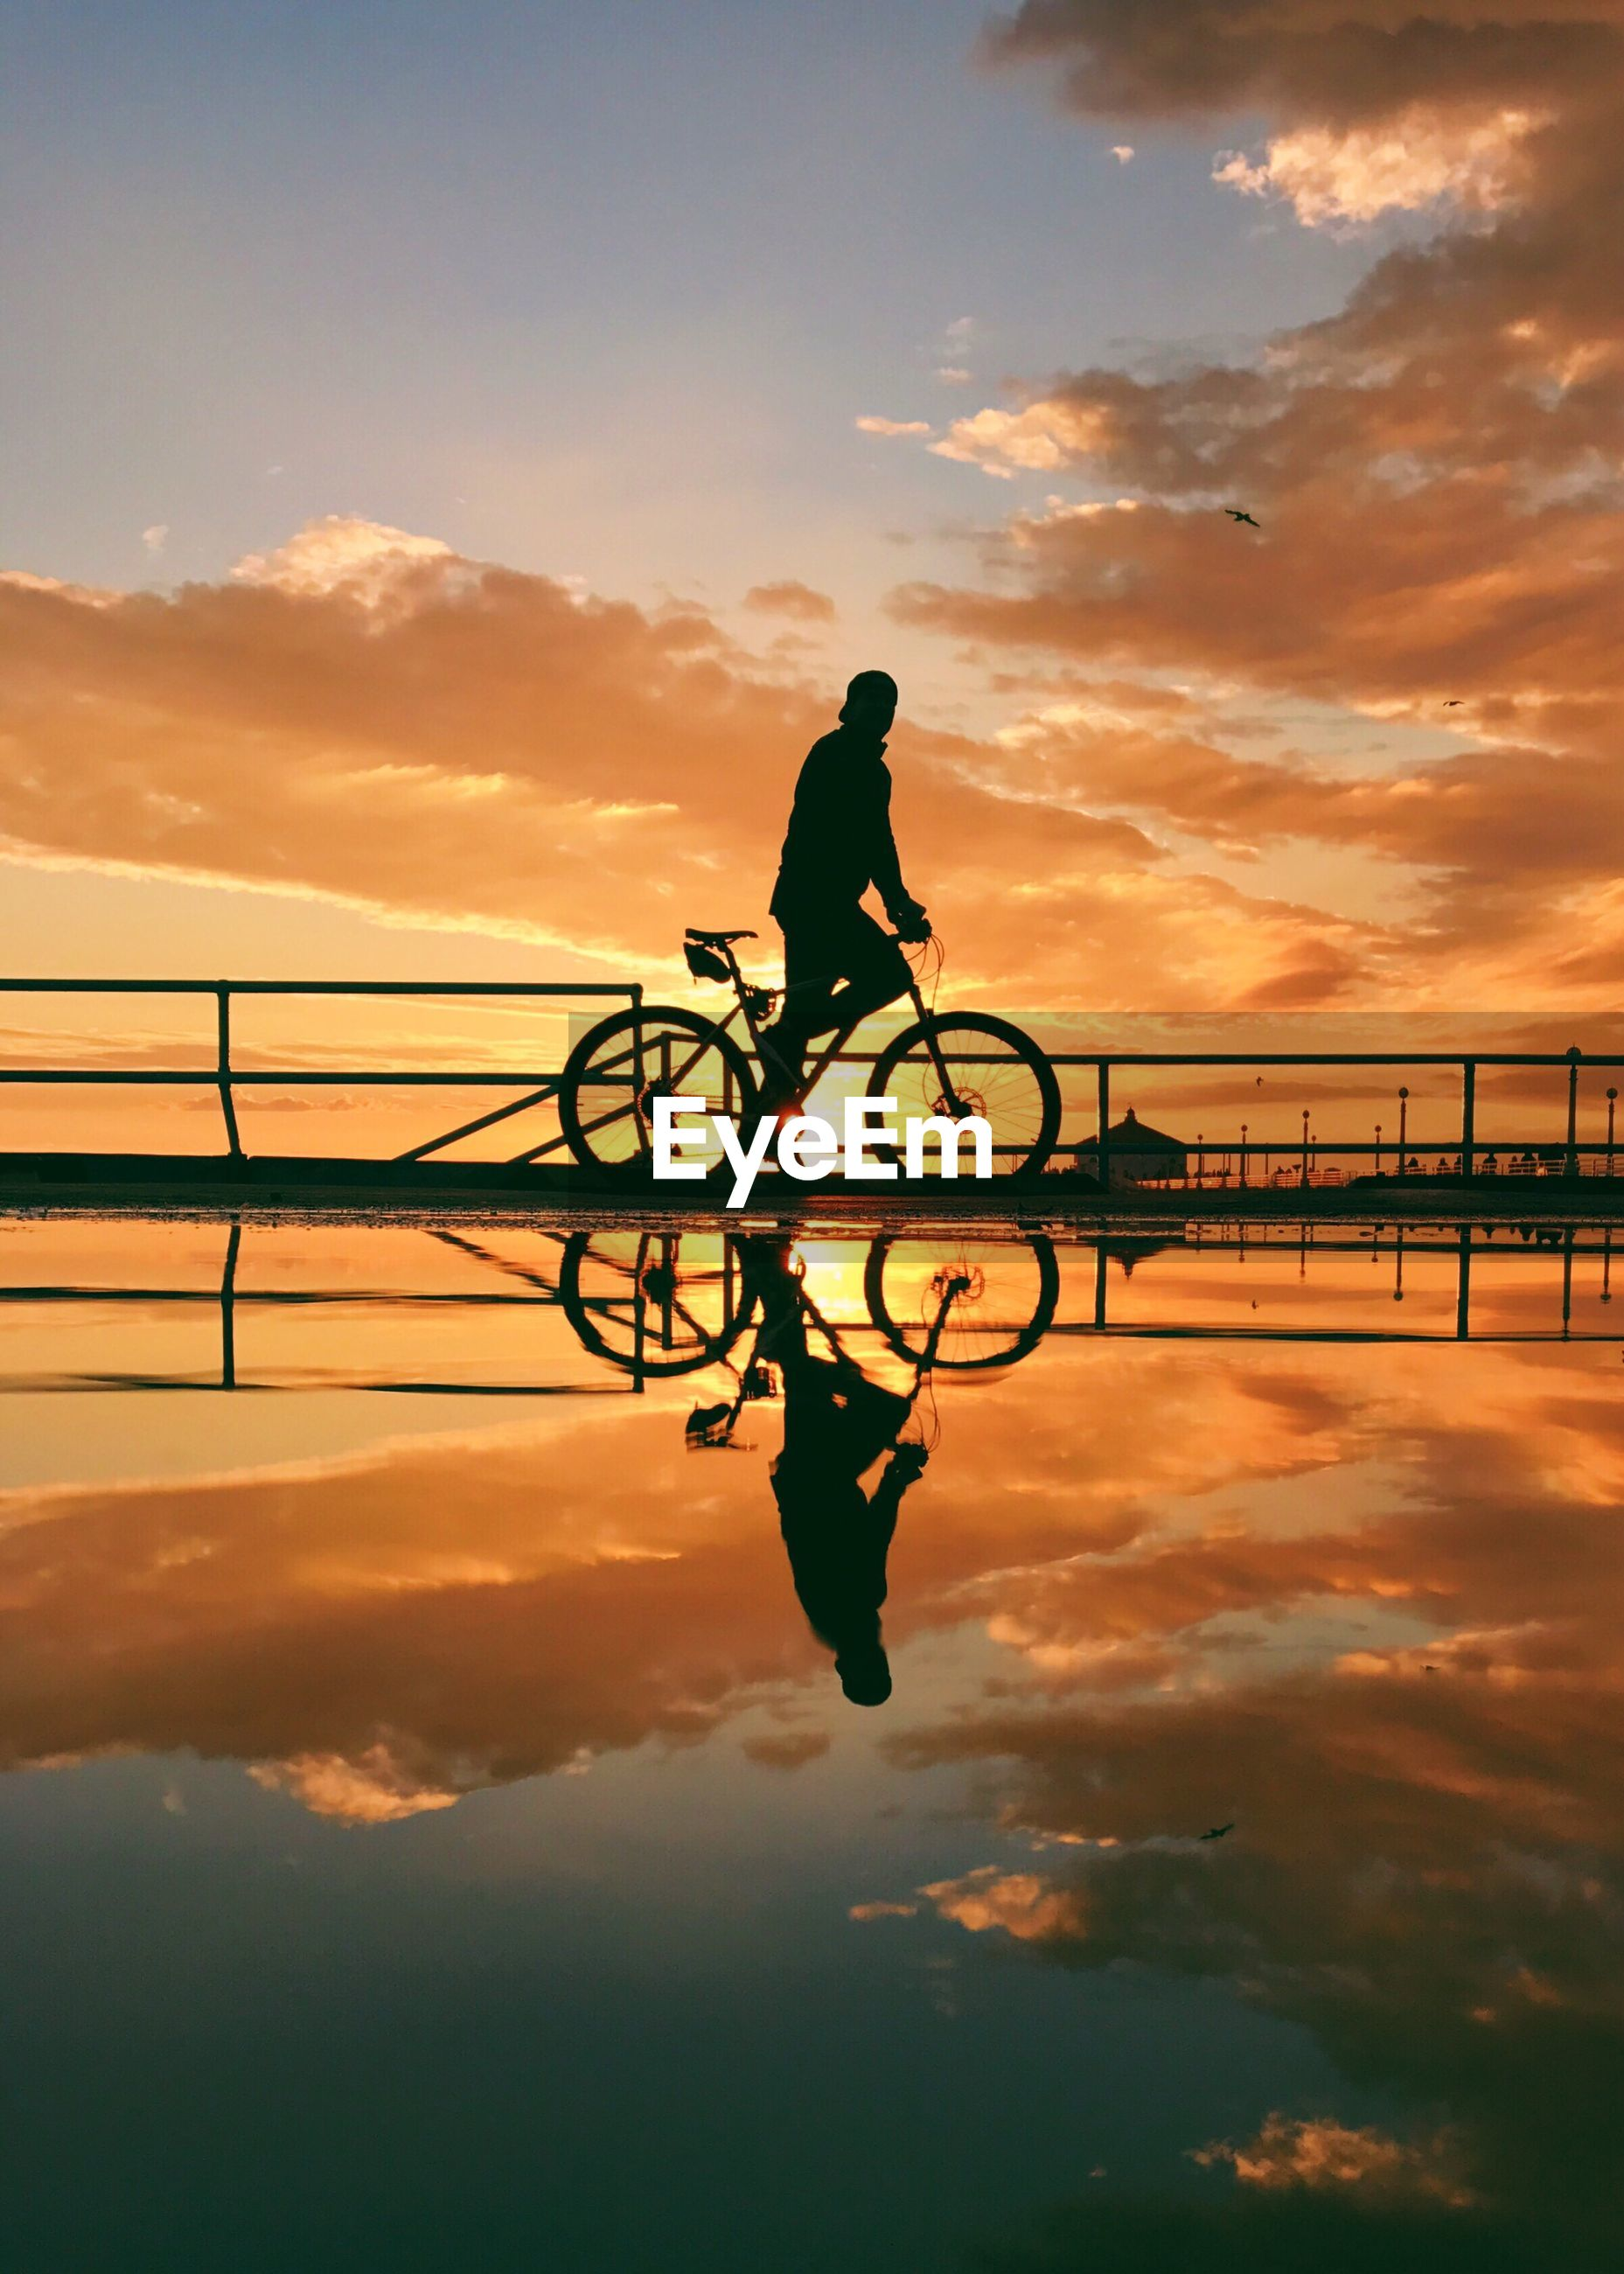 Silhouette man cycling with reflection in lake against sky during sunset